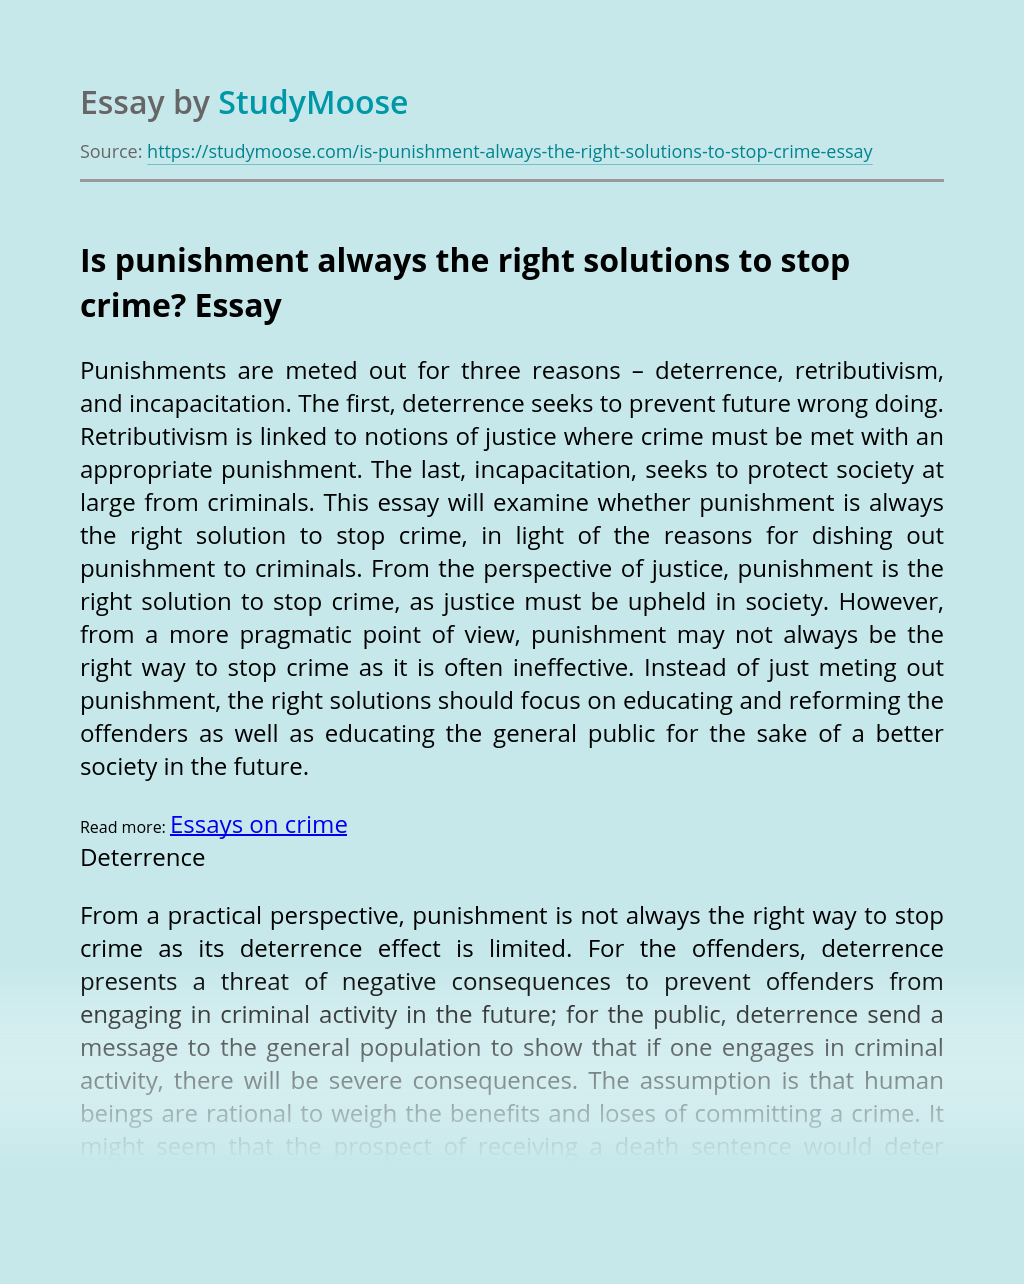 Is punishment always the right solutions to stop crime?